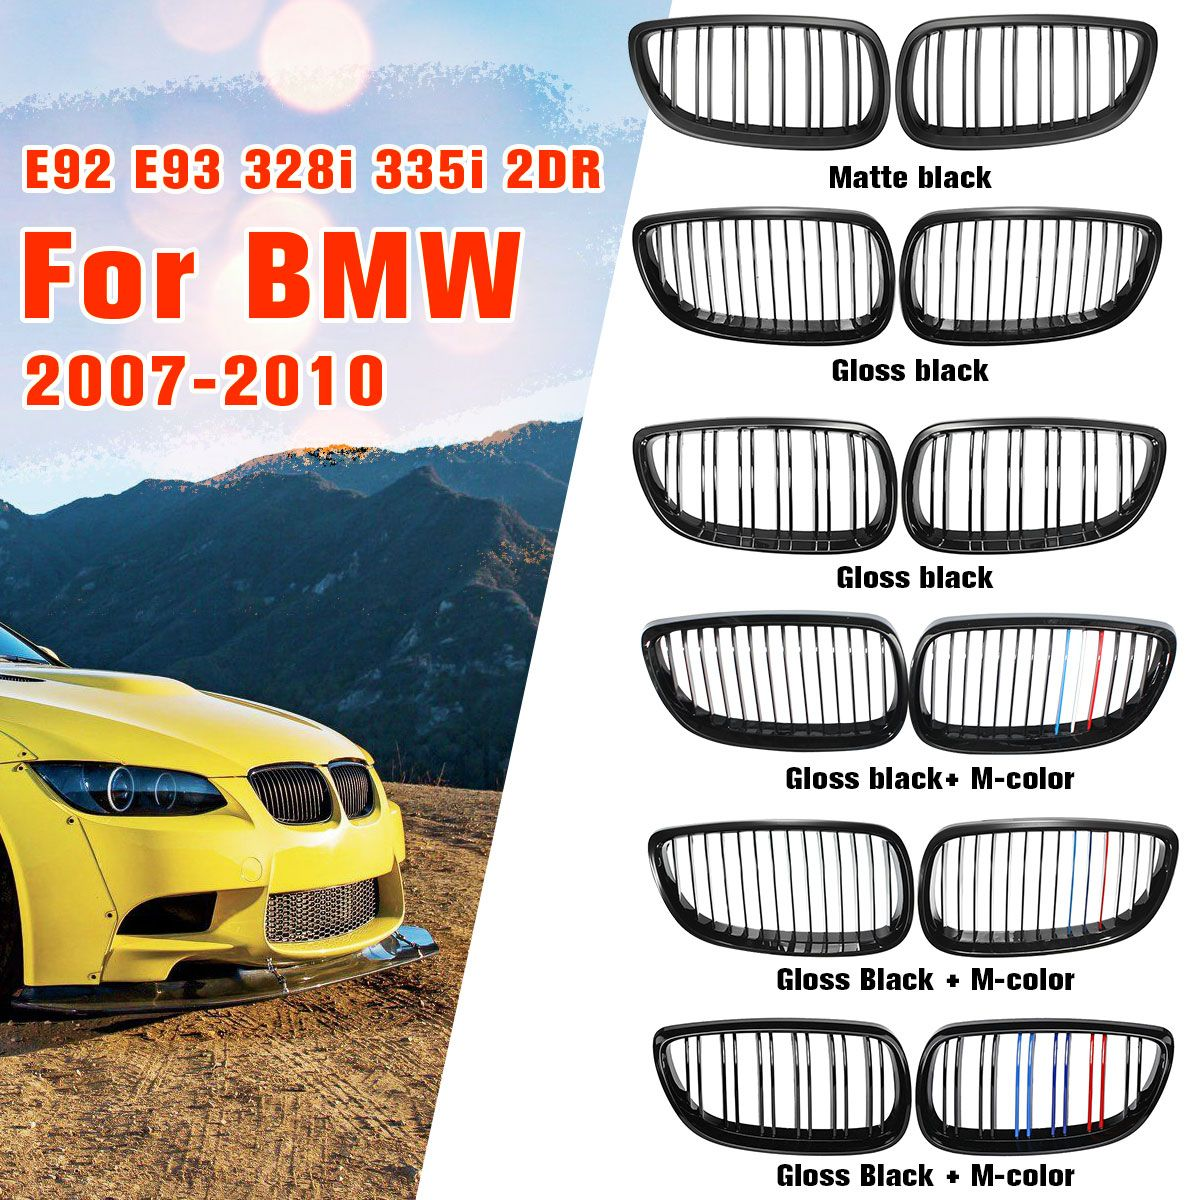 Gloss Matte Black M-color Dual Line Front Grille Kidney Grill For BMW E92 E93 M3 328i 335i 2Door 2007 2008 2009 2010 Car Styling